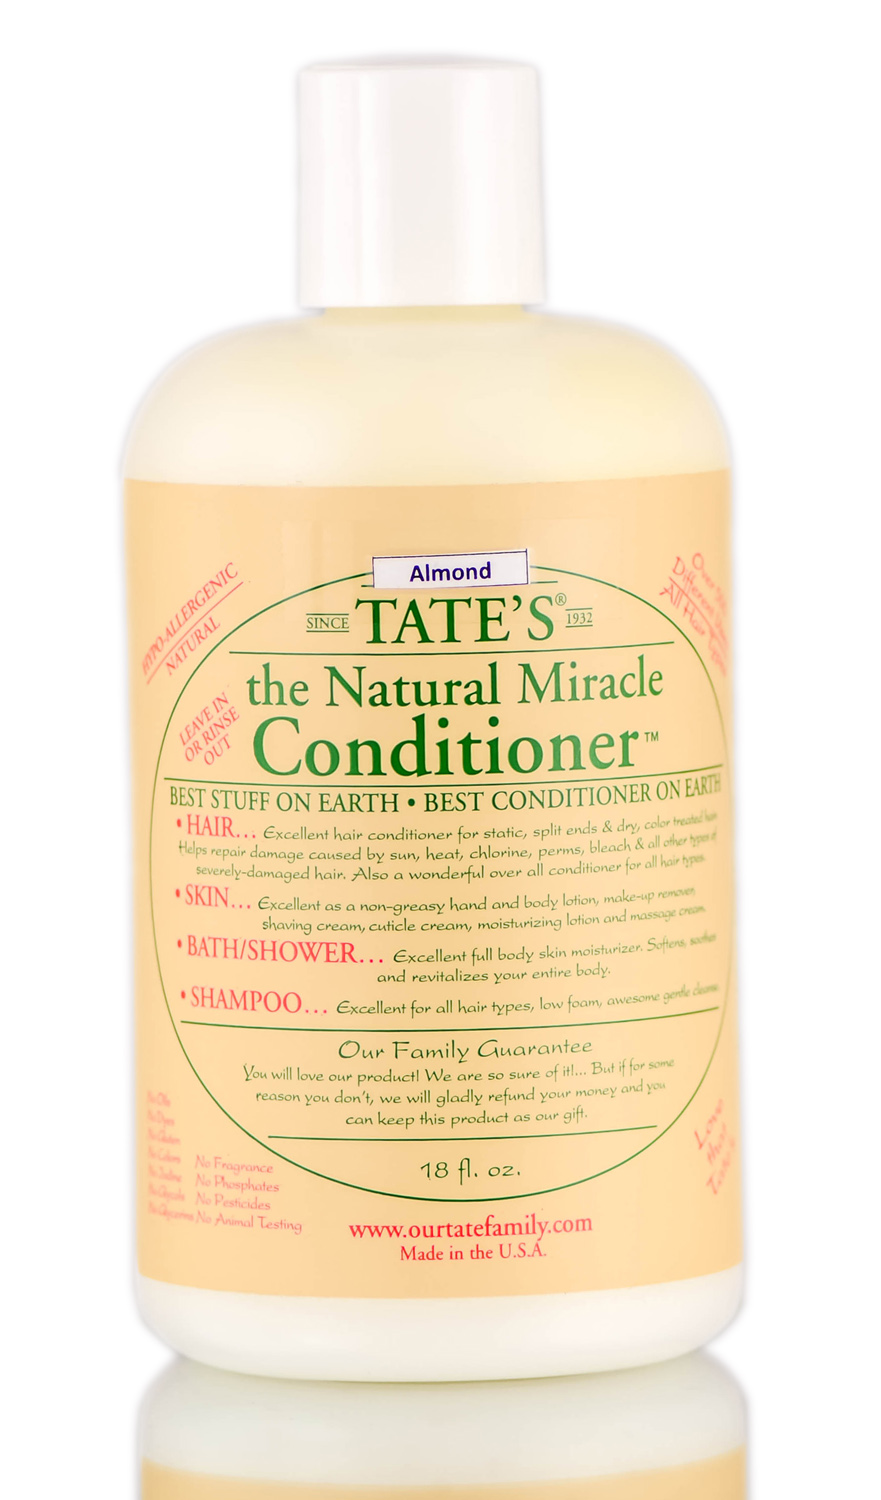 Tate's The Natural Miracle Almond Conditioner